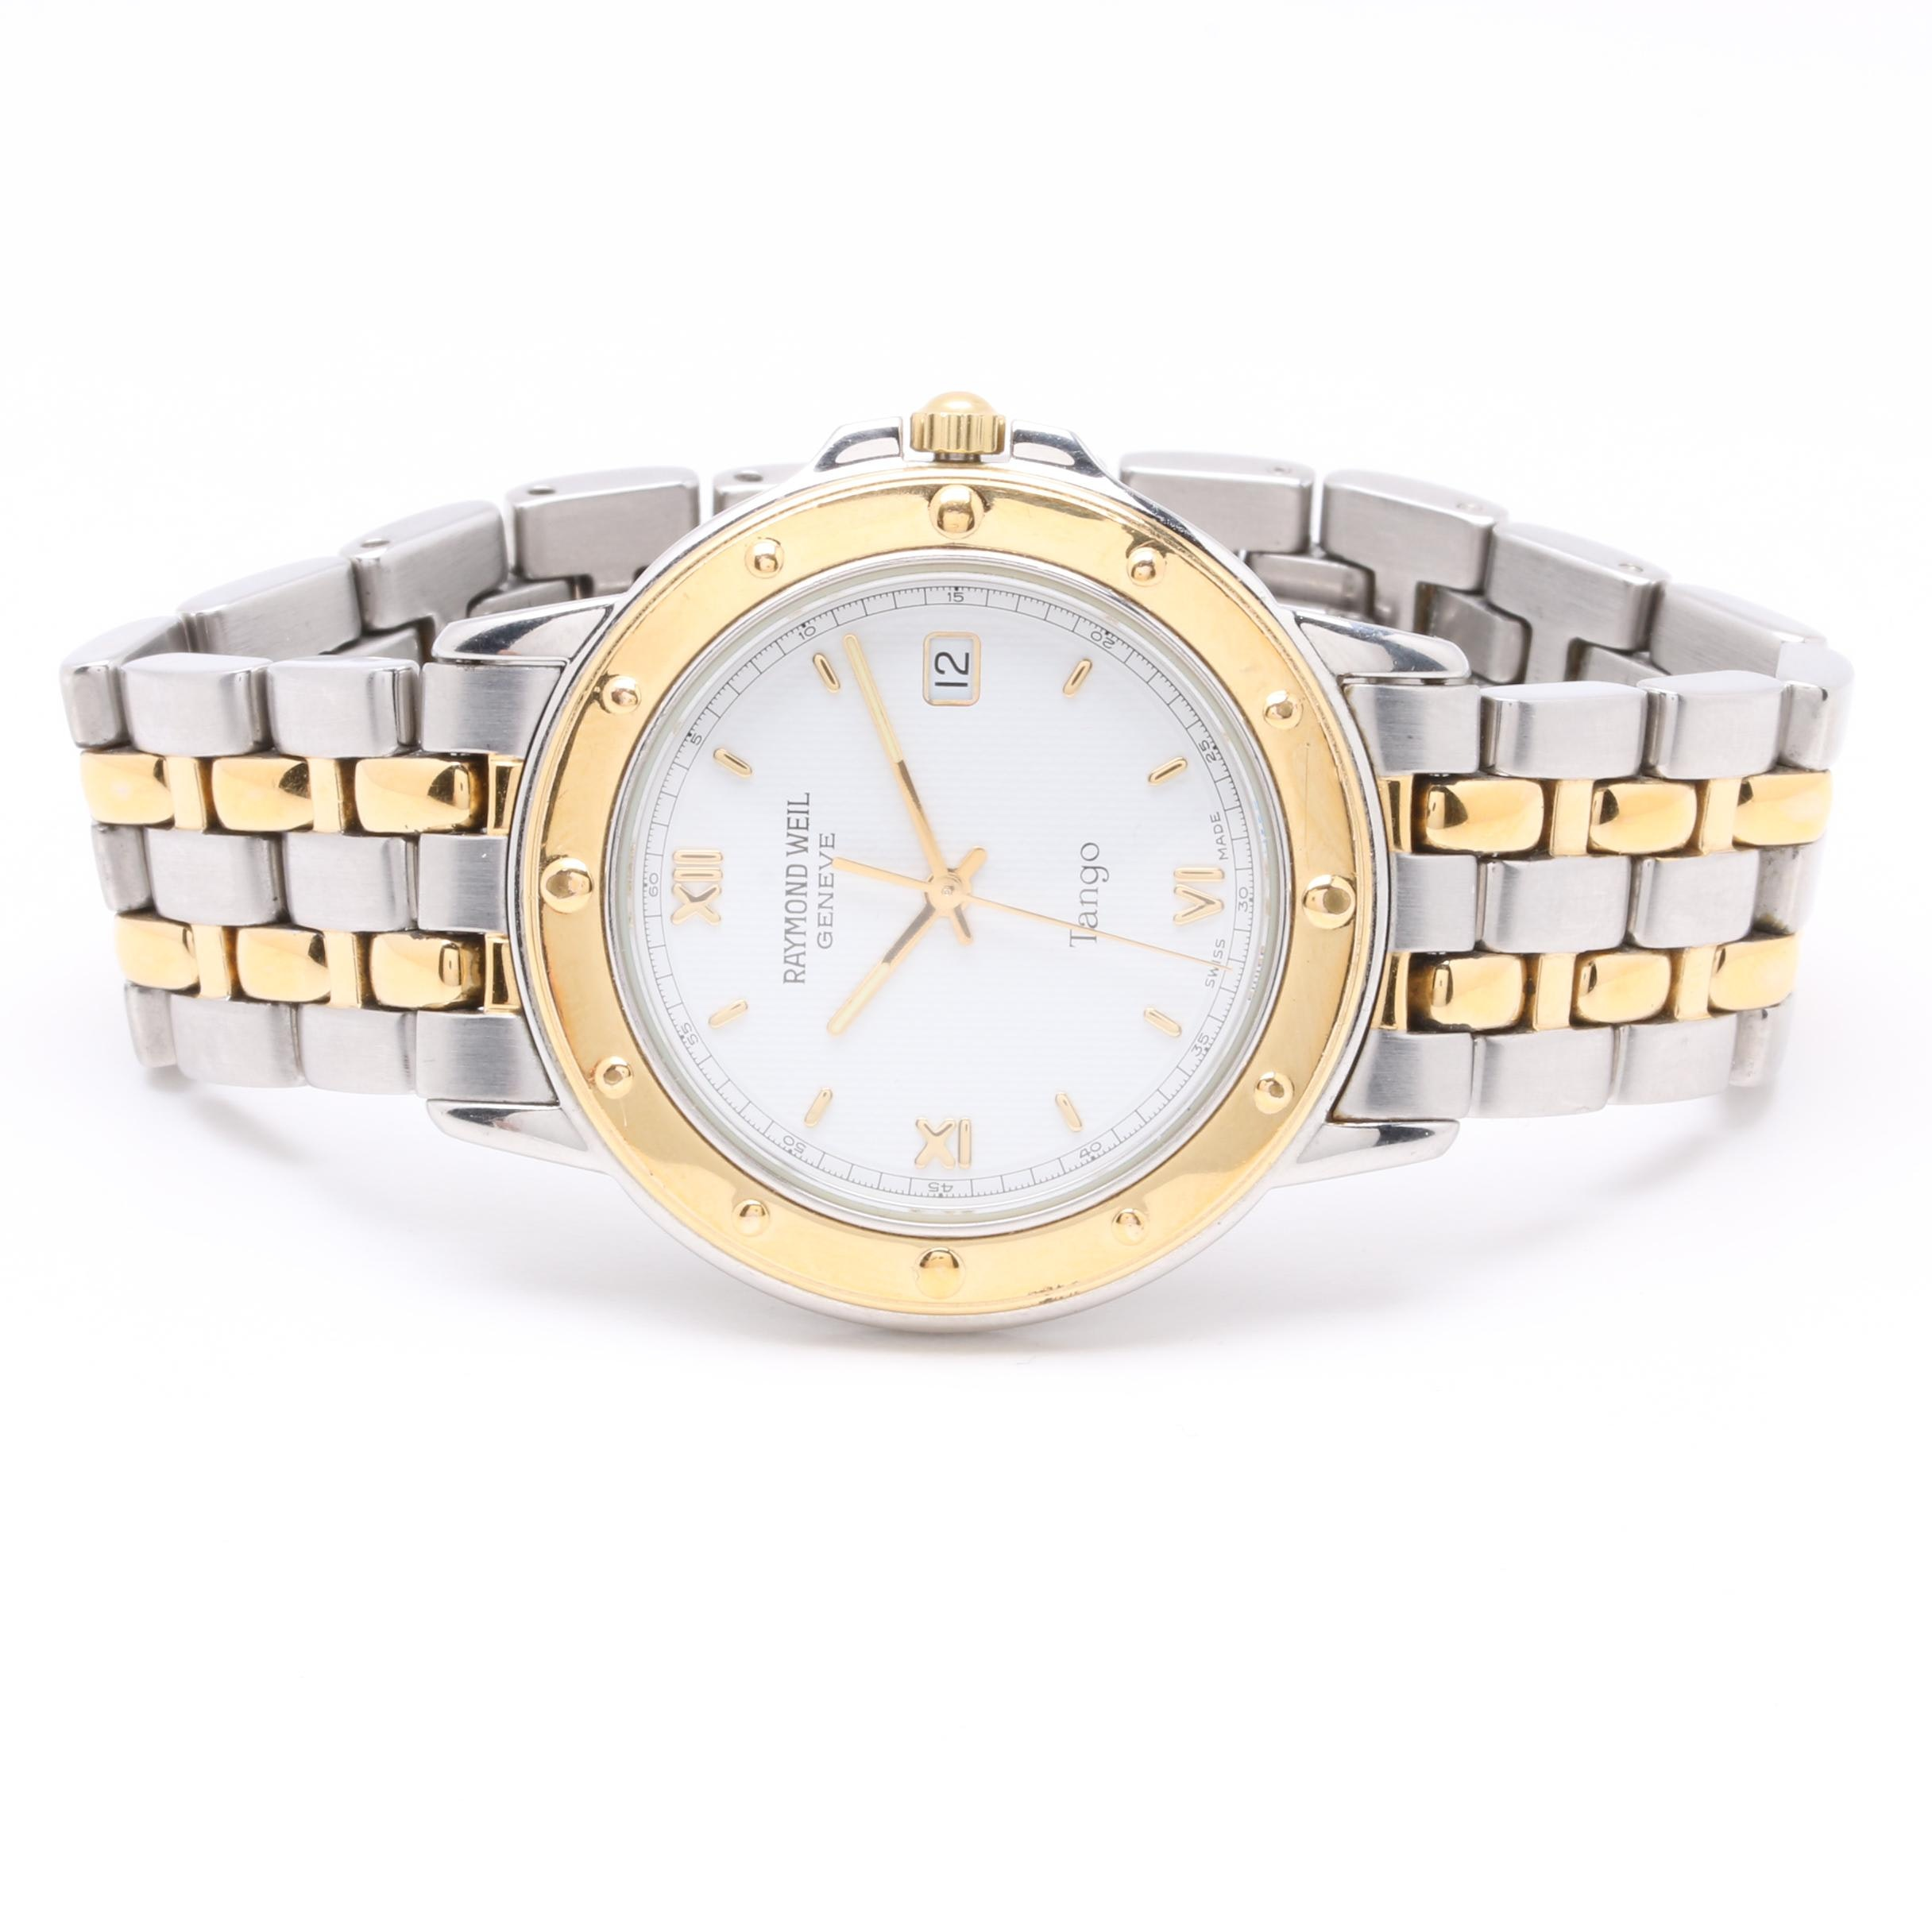 Raymond Weil Stainless Steel and Yellow PVD Plated Wristwatch